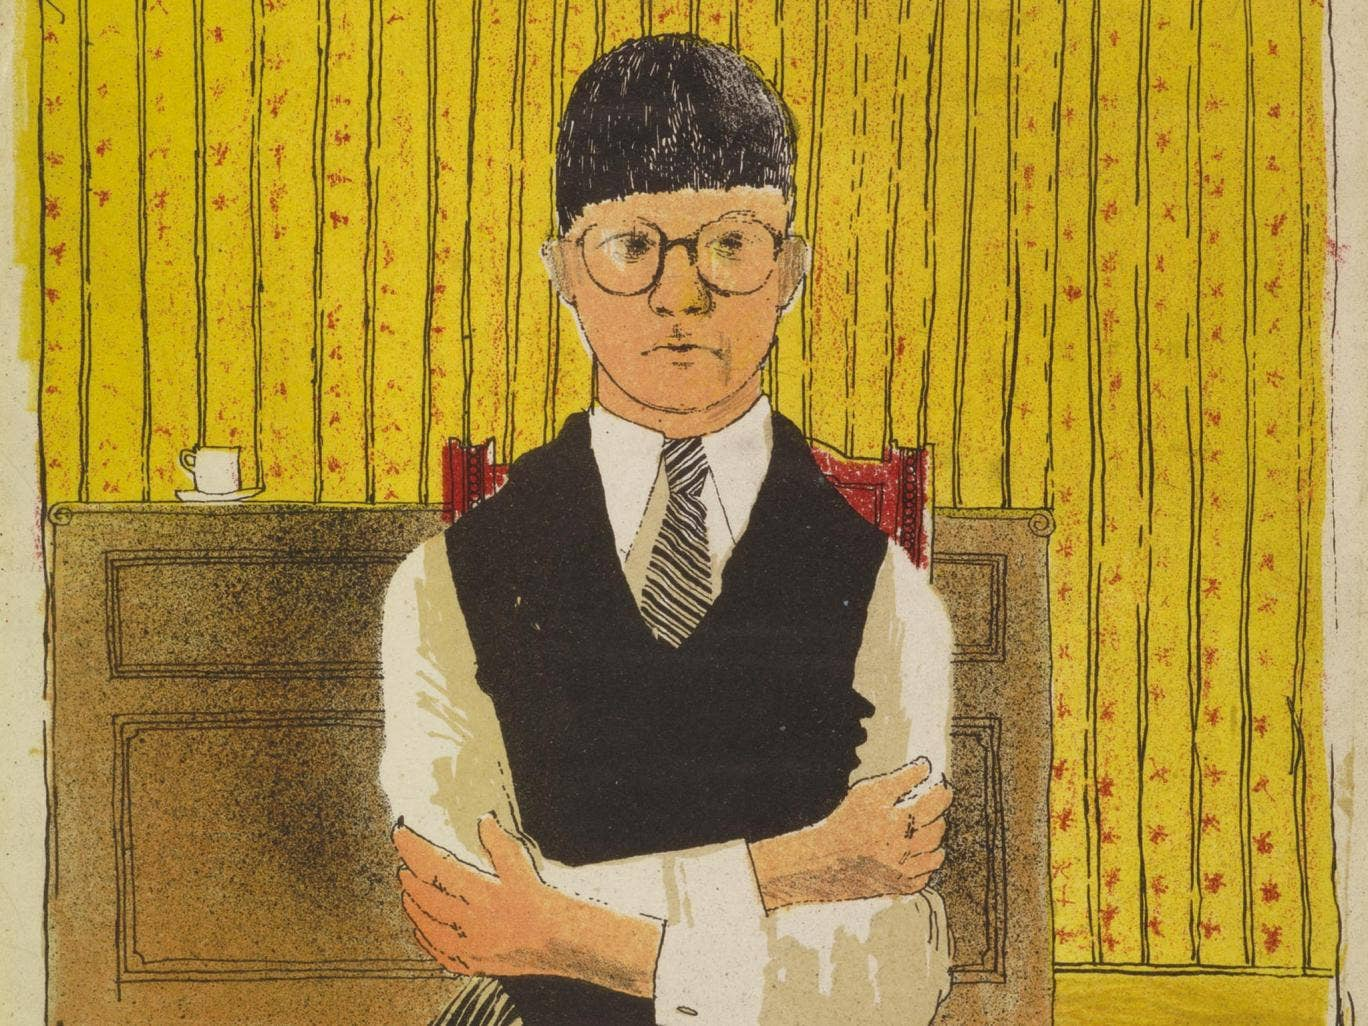 David Hockney's 'Self Portrait', lithograph (1954)